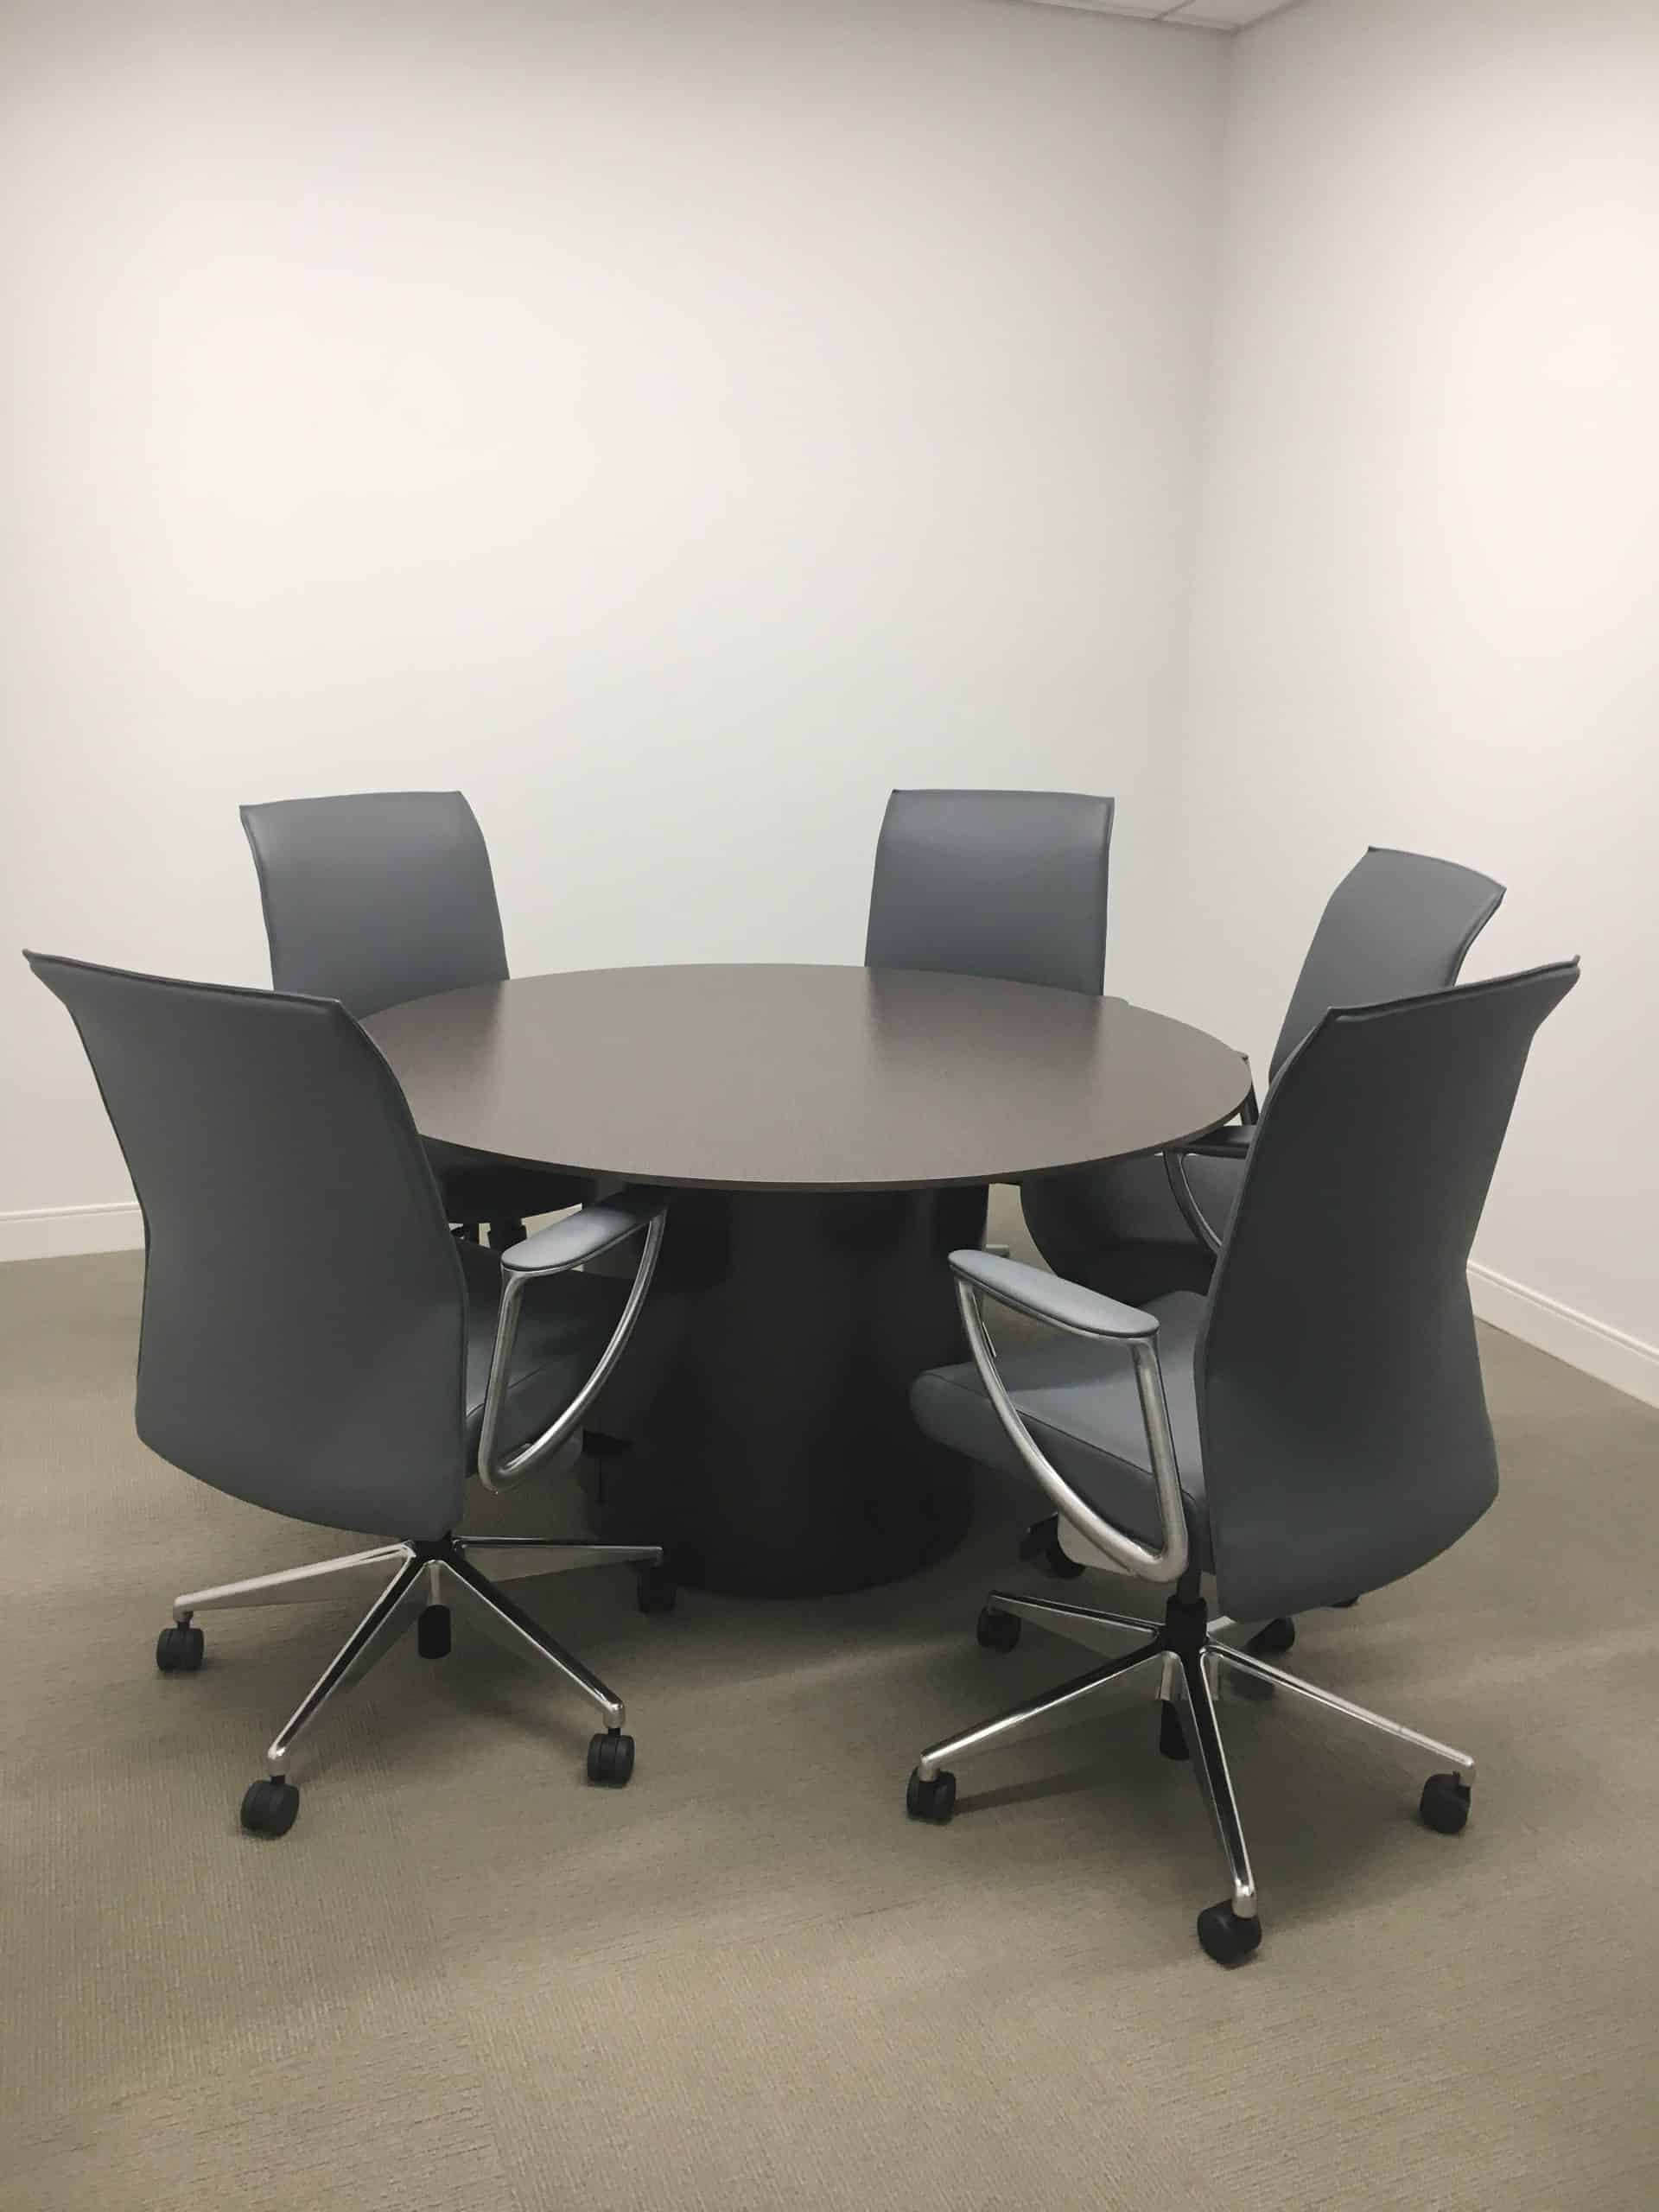 used conference room chairs red desk chair modern and break furniture tables